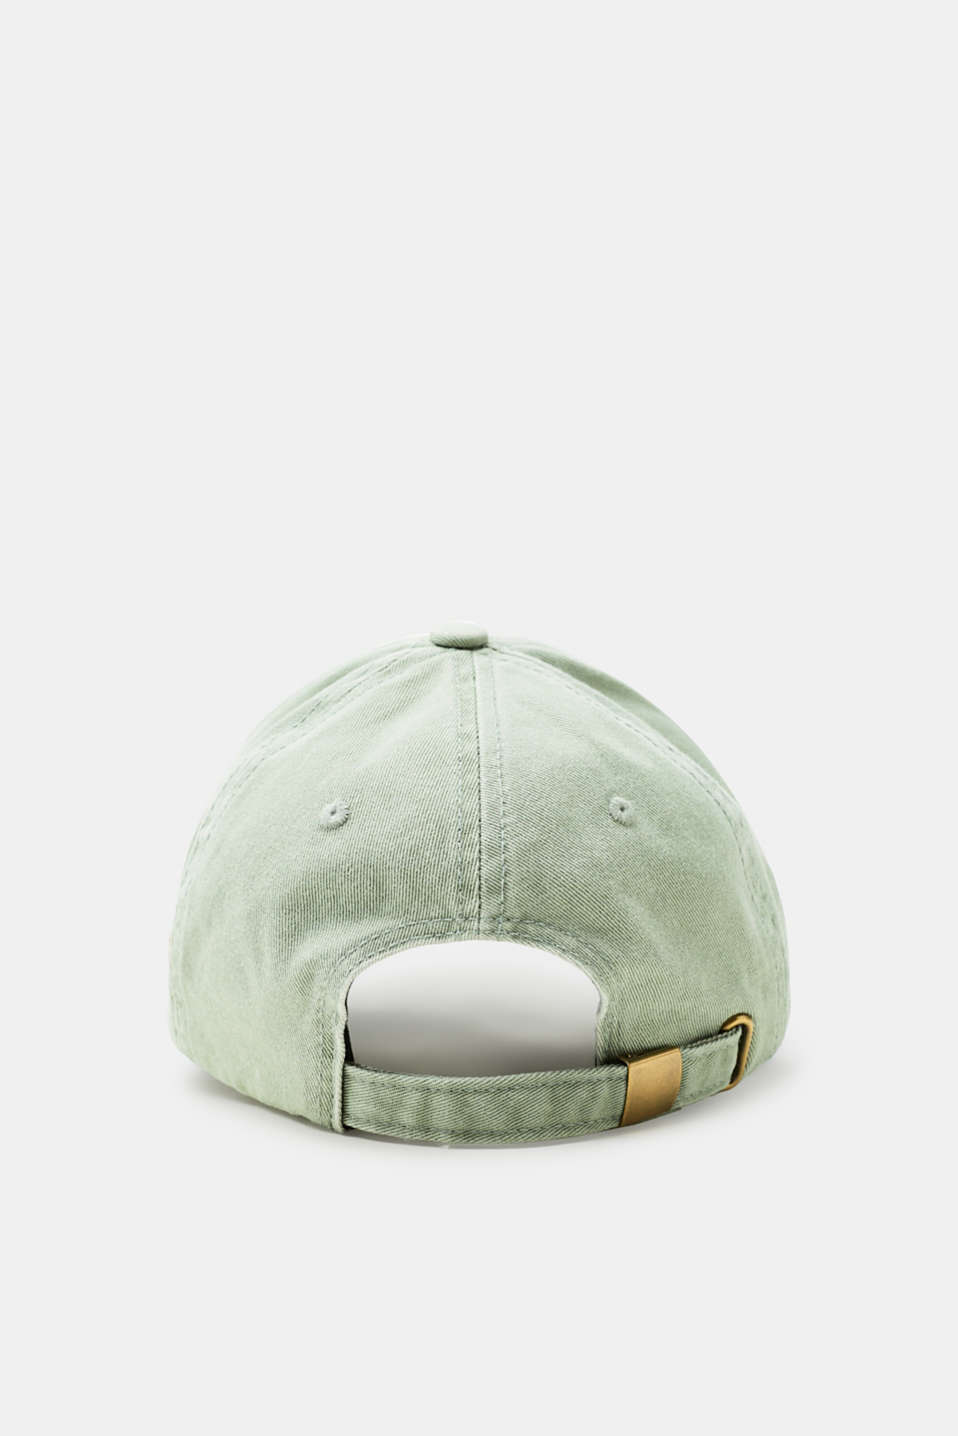 Canvas baseball cap with a subtle garment-washed effect